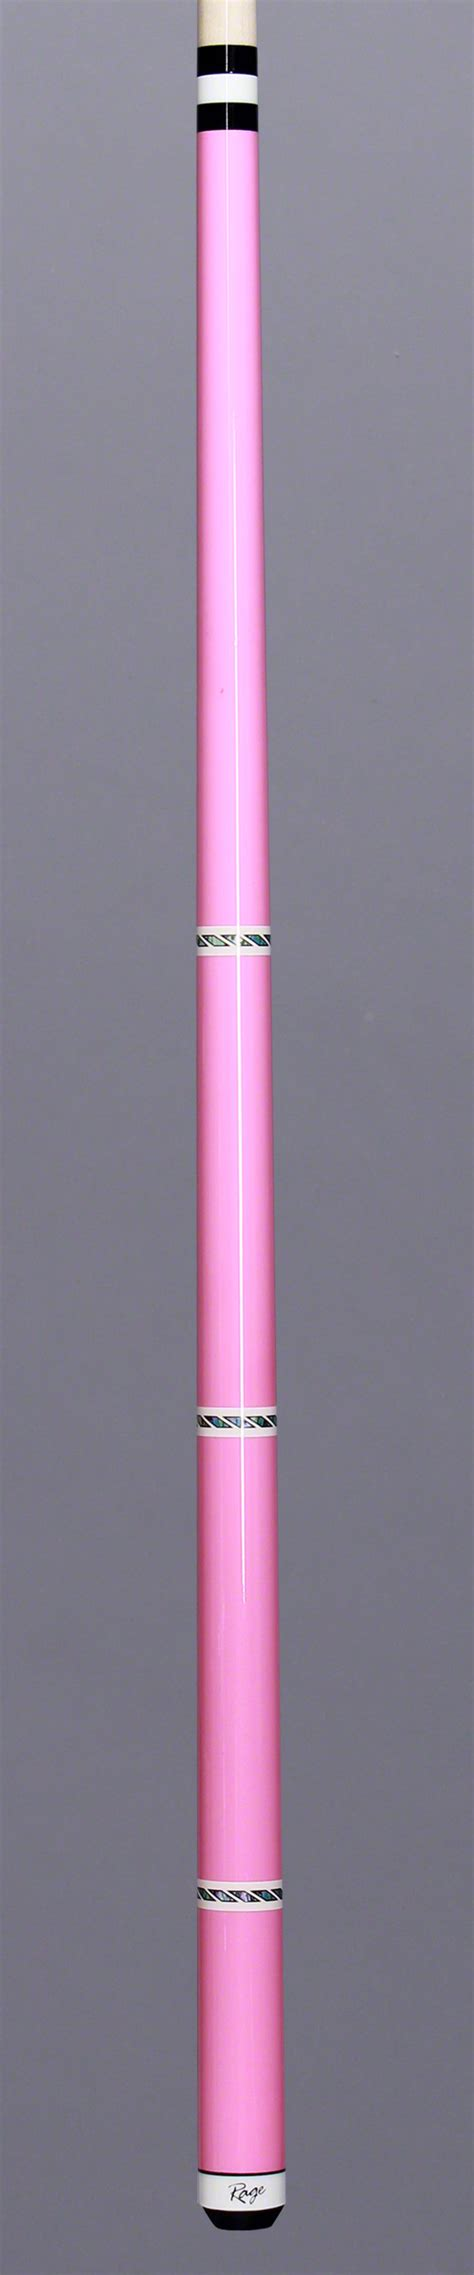 Amio Id Gamis Pink Mapple rage pink icicle pool cue